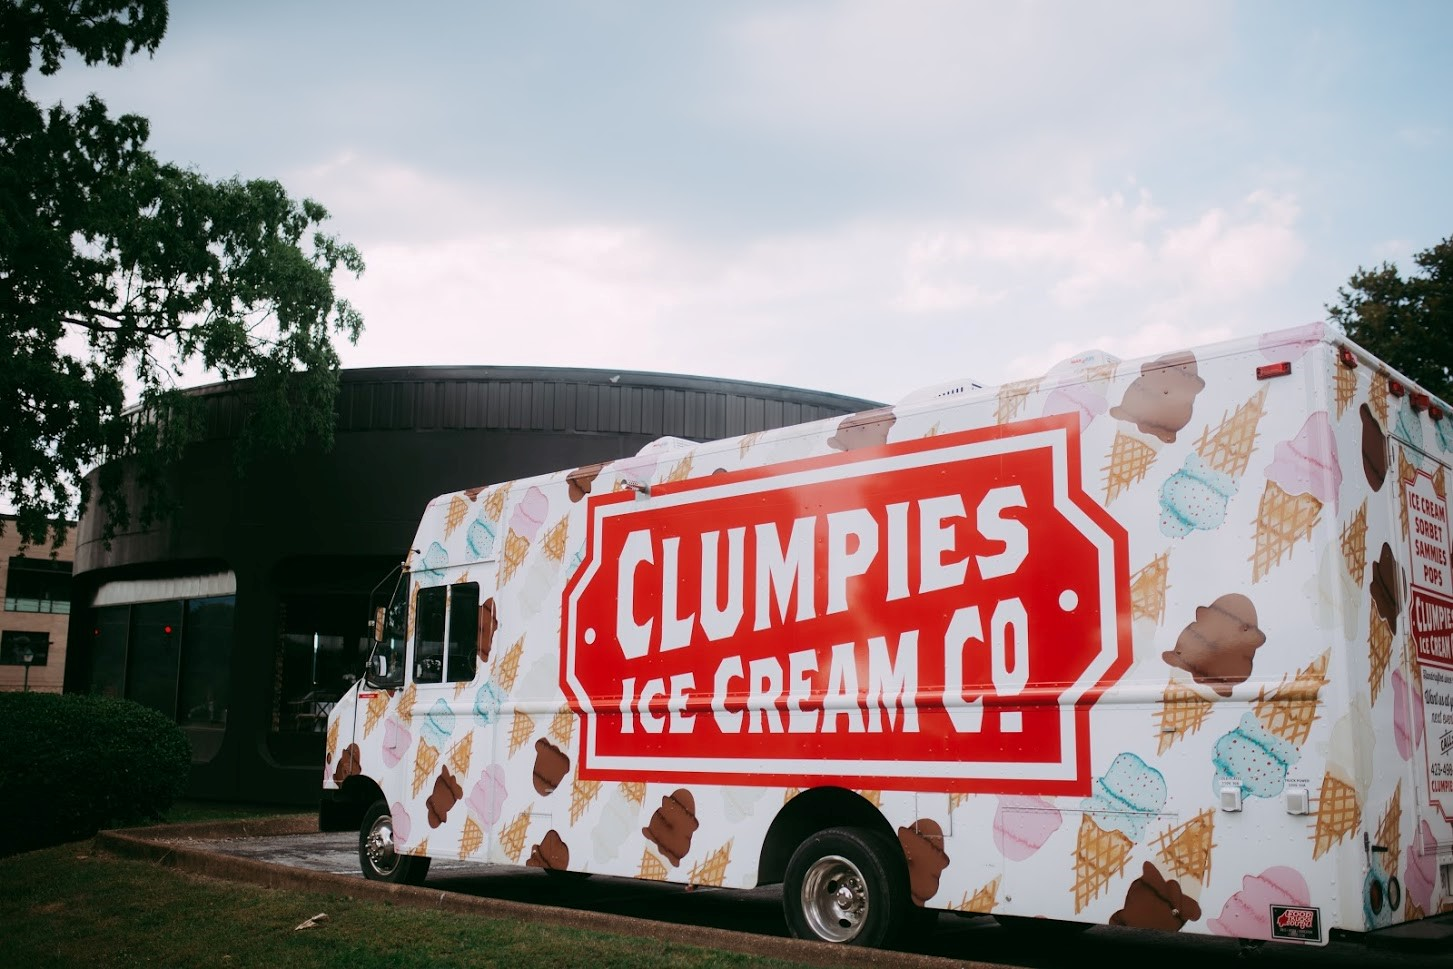 Clumpies Truck location image